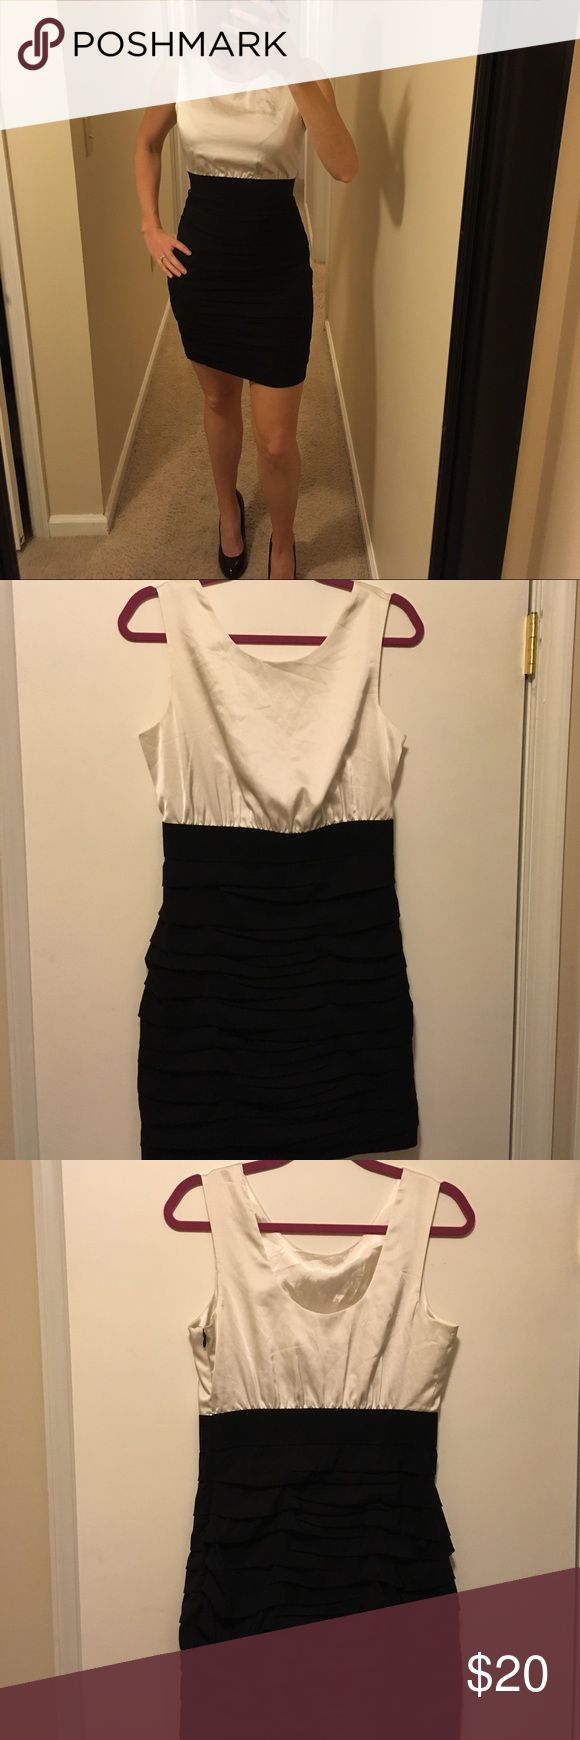 Express, Black and White, Fitted, Mini Dress Sophisticated, sleeveless, black and white, Mini Dress. Scooped back with a hidden side zipper. Size 8 but truer to a size 6. Only worn once! Express Dresses Mini